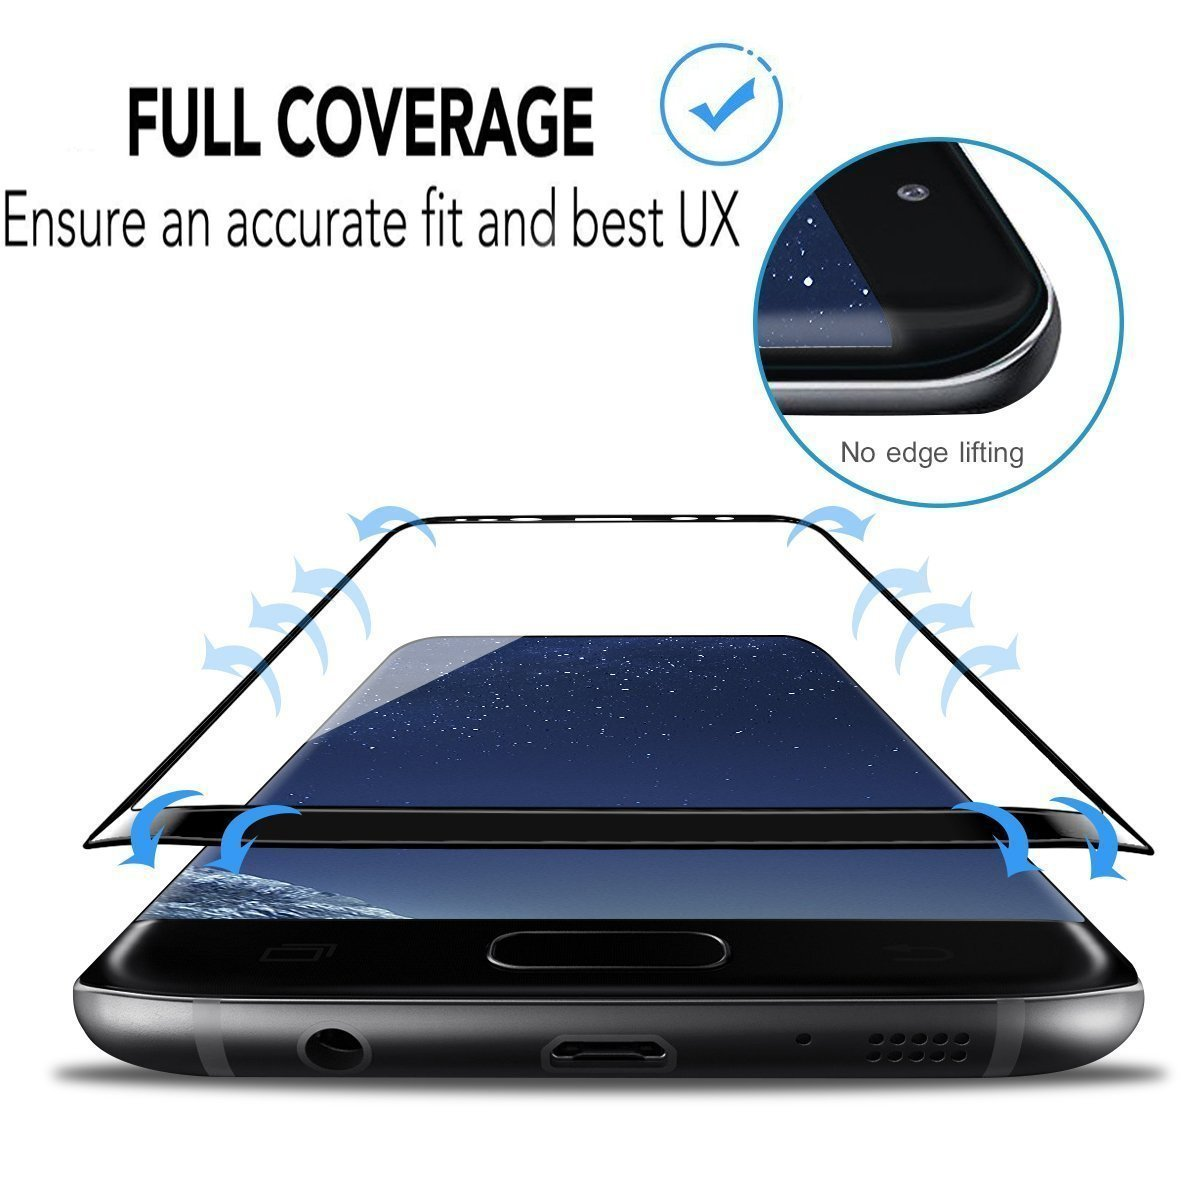 LEDitBe Galaxy S9 Screen Protector, Full Screen Tempered Glass Screen Protector Film, Edge to Edge Protection Screen Cover Saver Guard for 3D 9H Hardness Samsung Galaxy S9 Black by LEDitBe (Image #4)